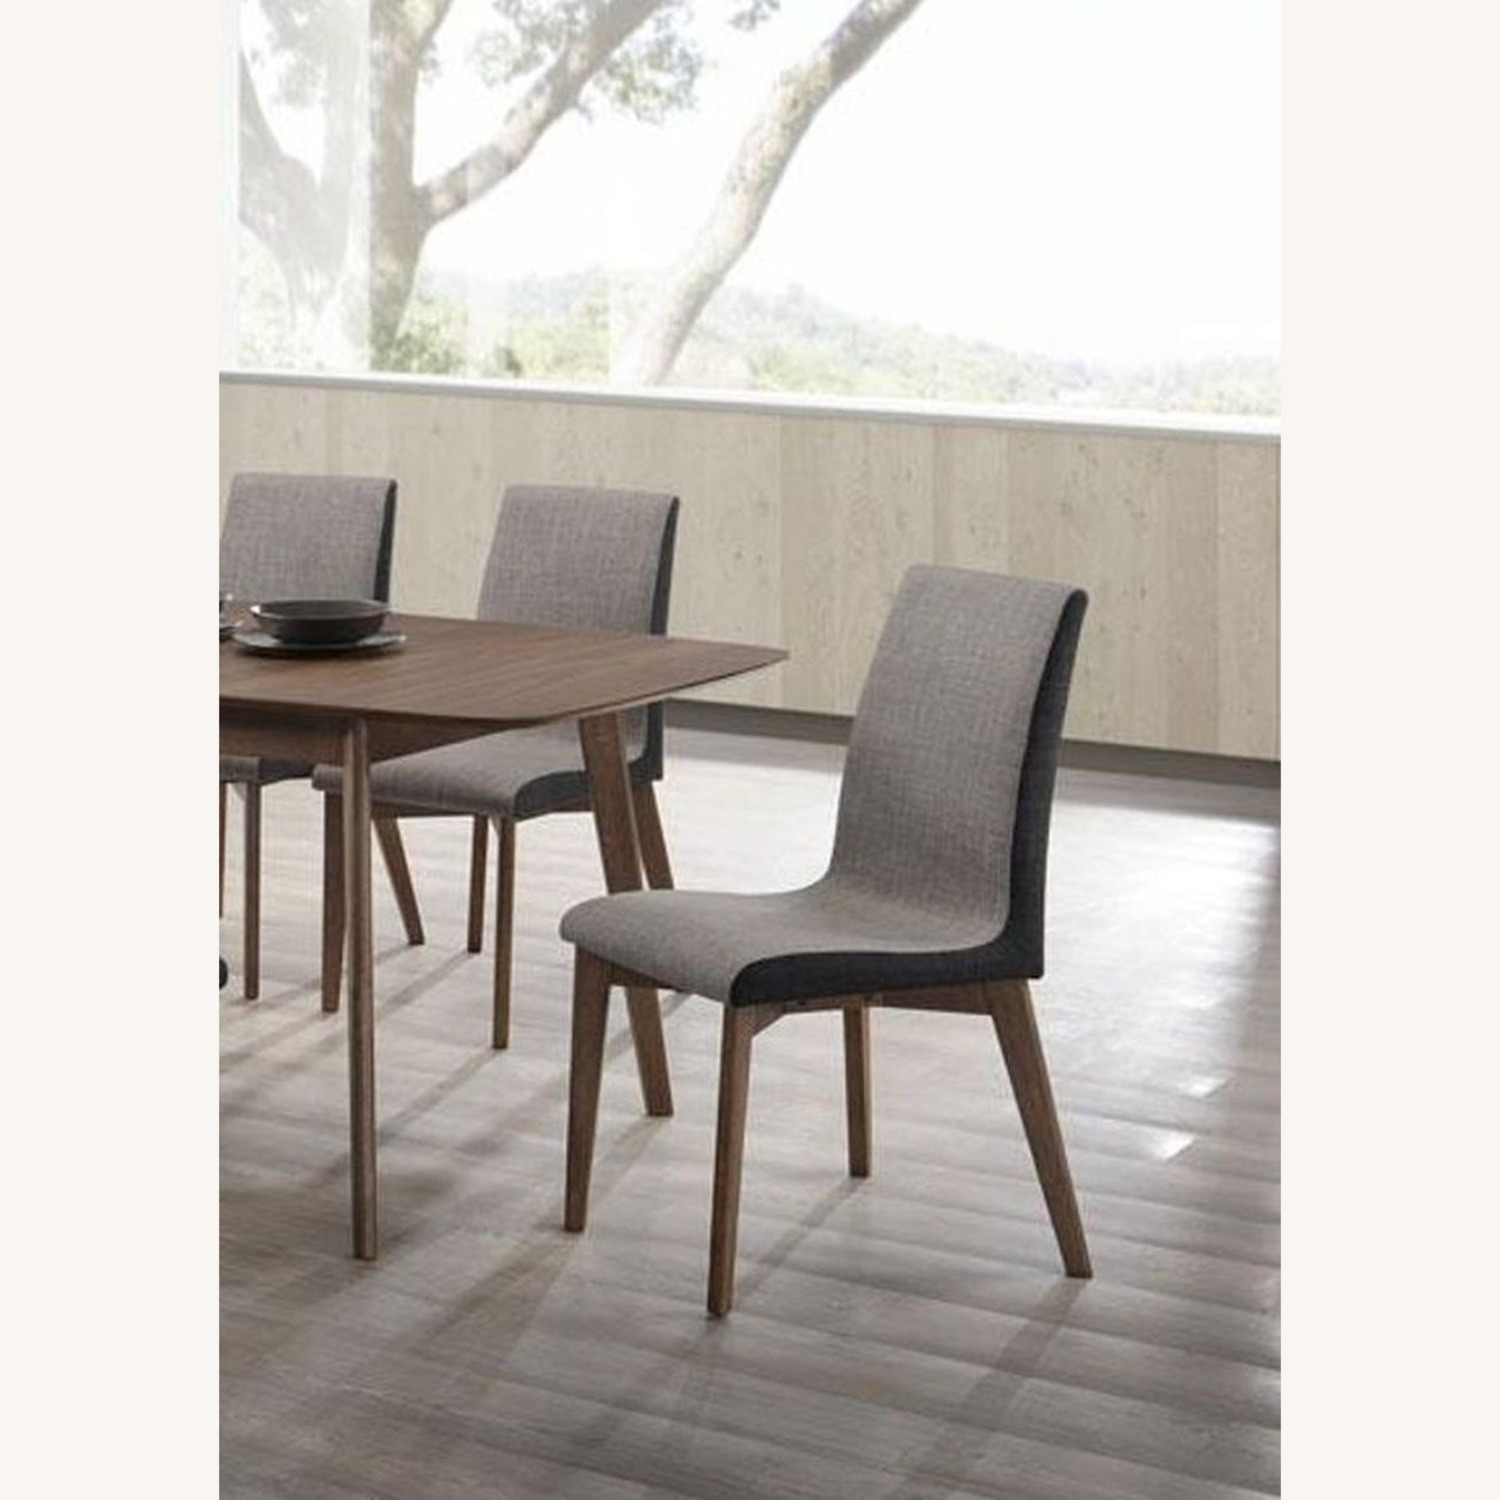 Dining Chair In Grey Fabric & Espresso Wood Finish - image-4